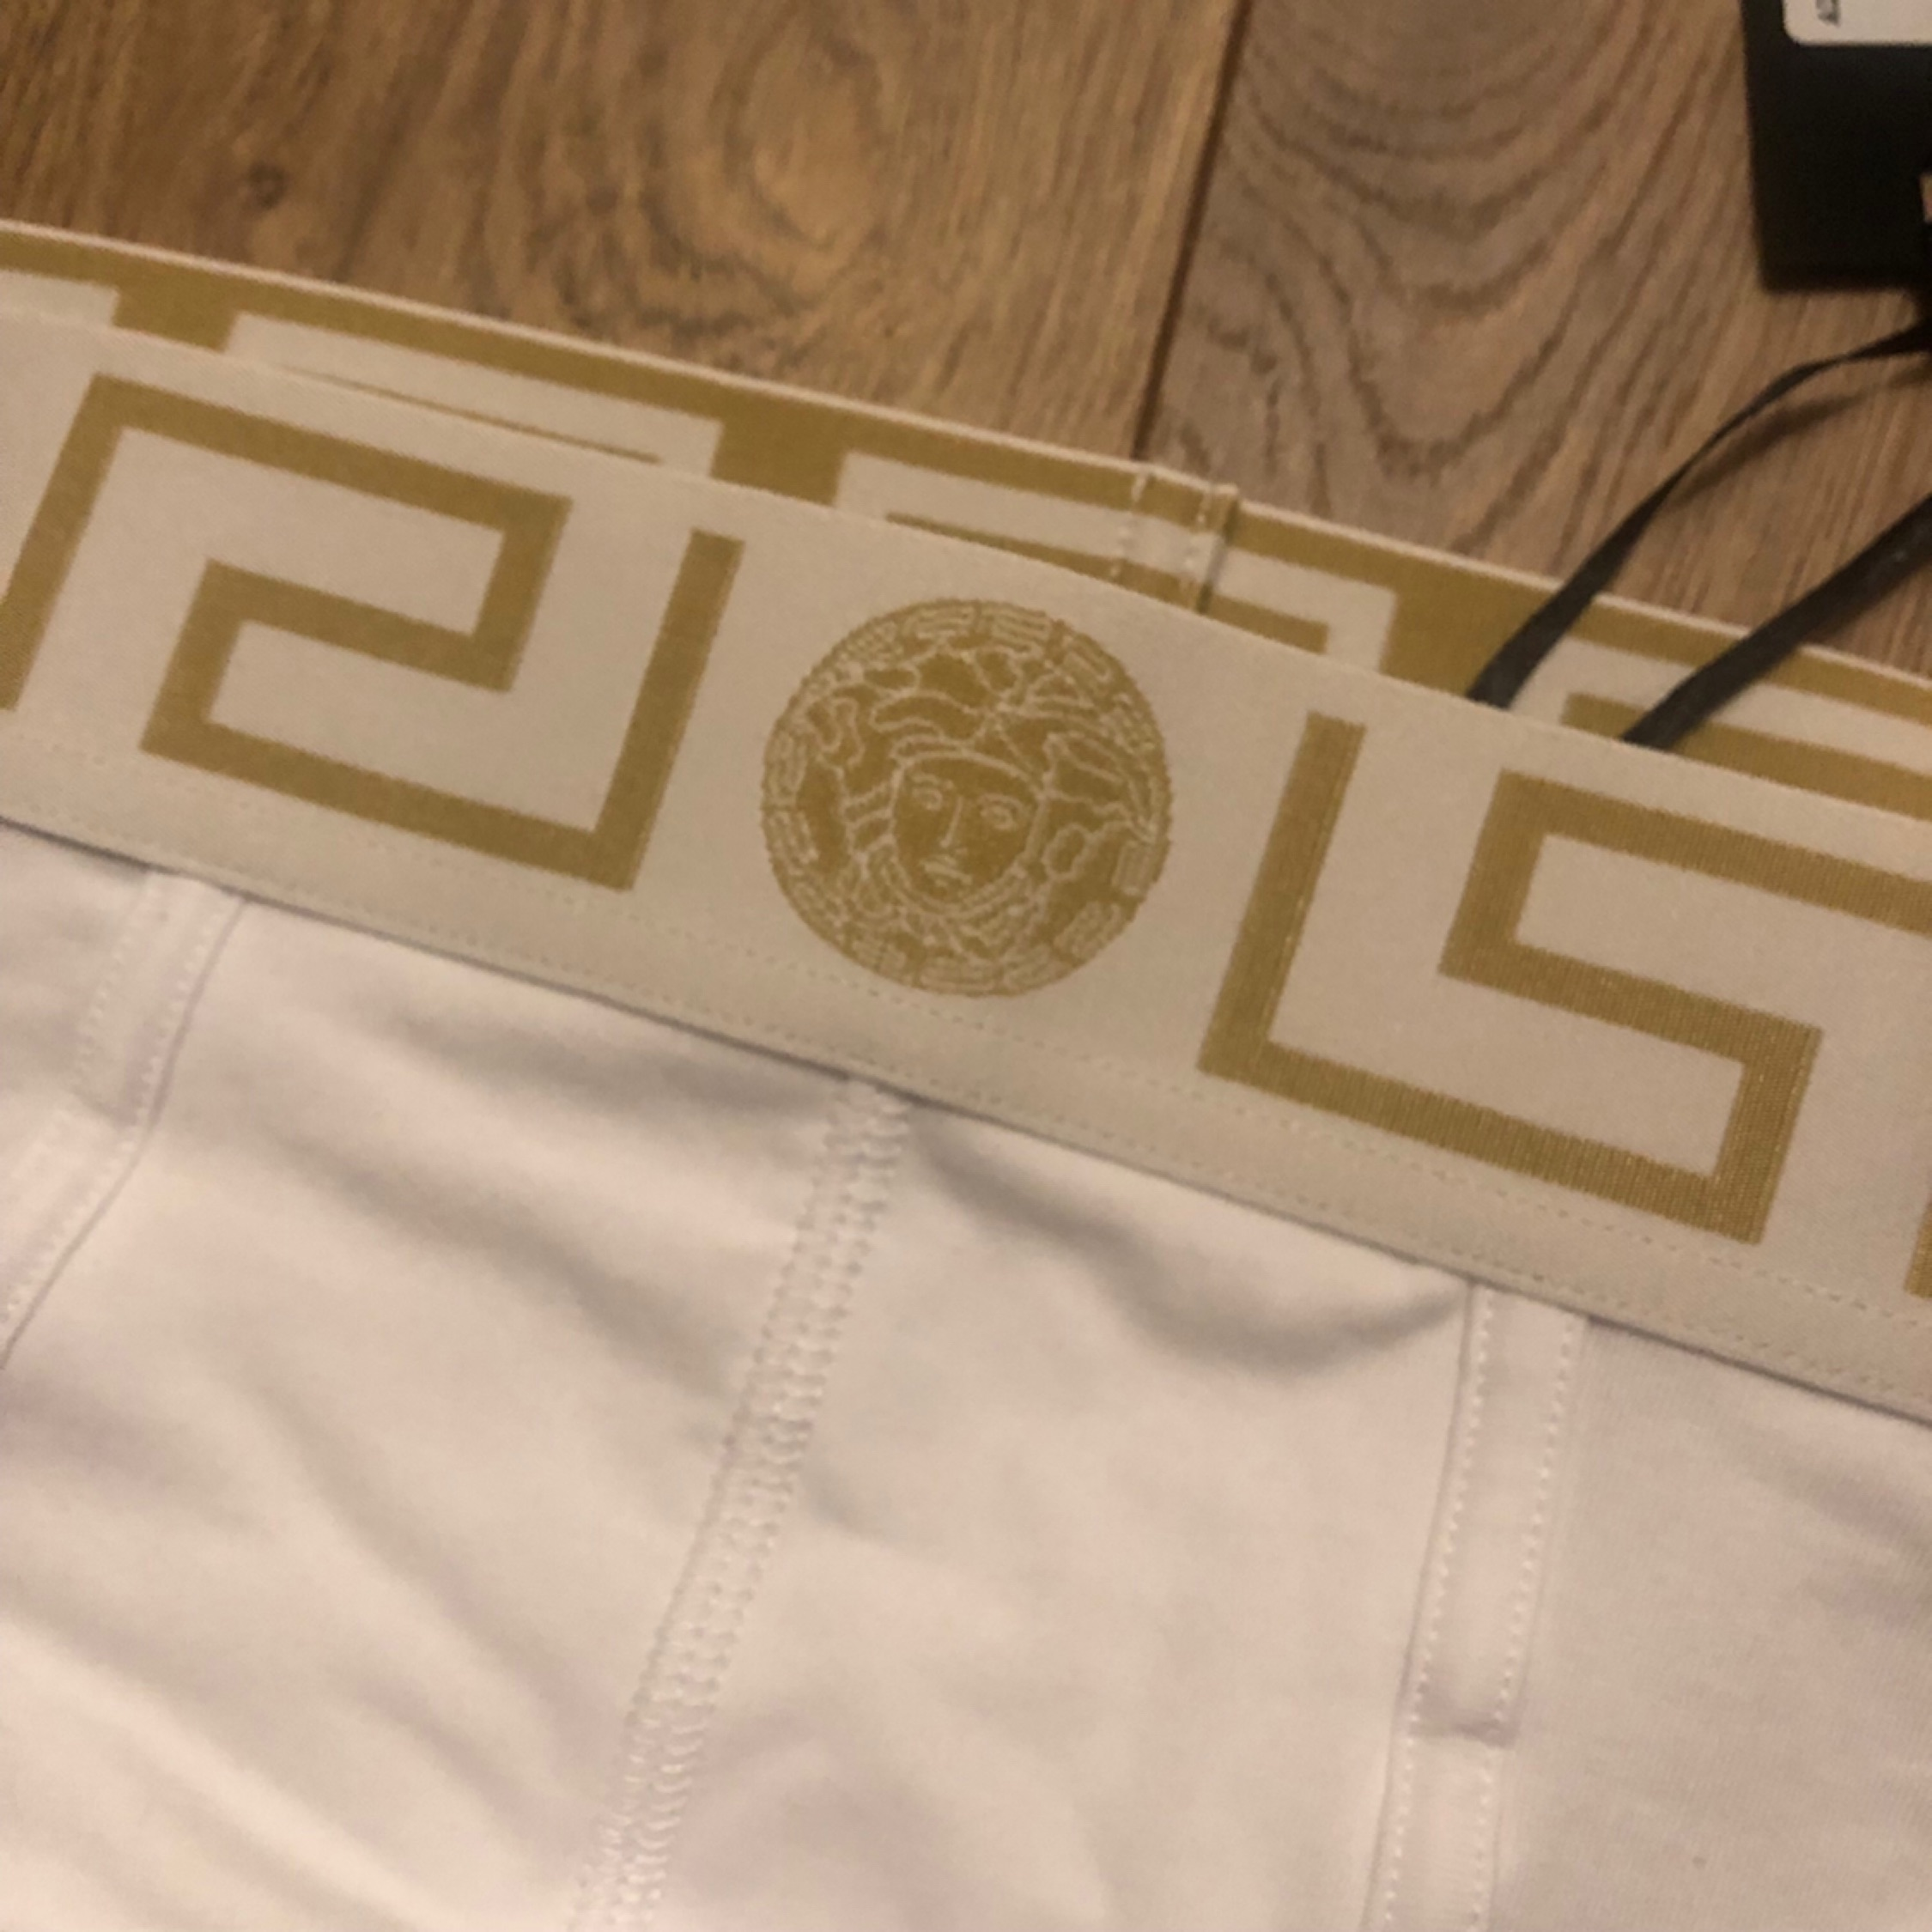 Versace - Medusa Waistband Briefs - Single Pack